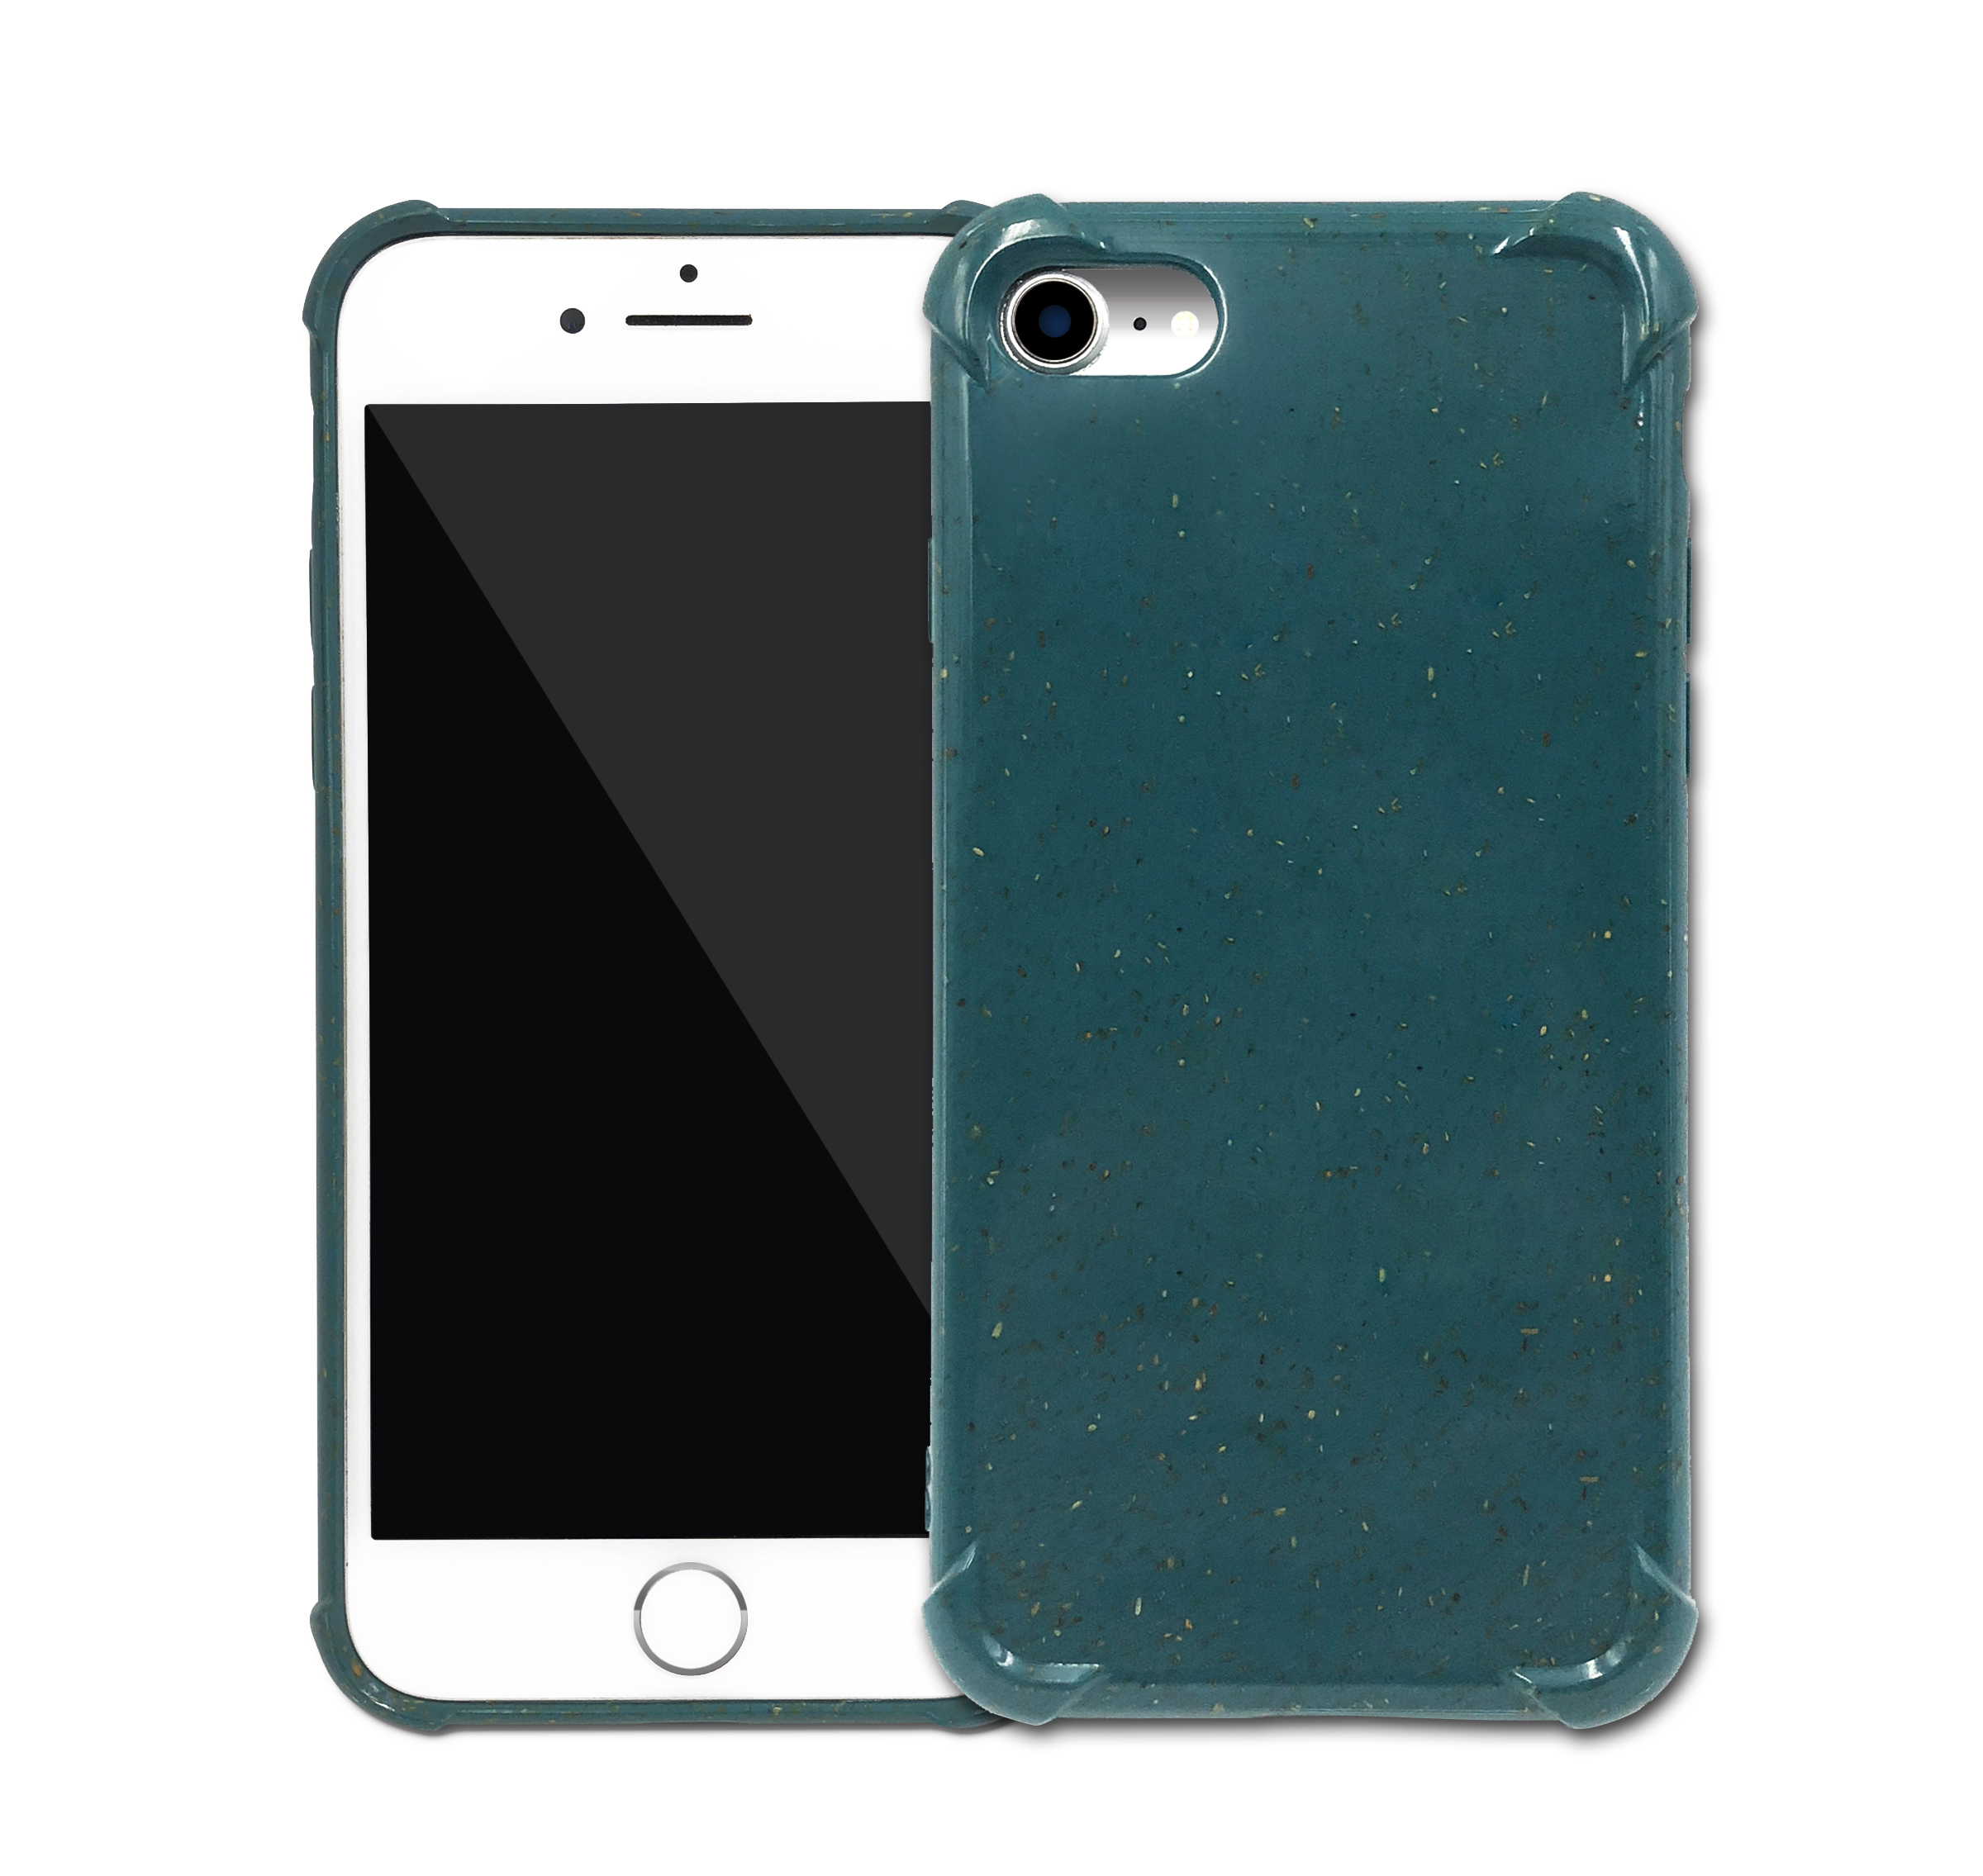 YOFEEL For iPhone Case Wheat PLA Biodegradable eco friendly <strong>Mobile</strong> <strong>Phone</strong> Case